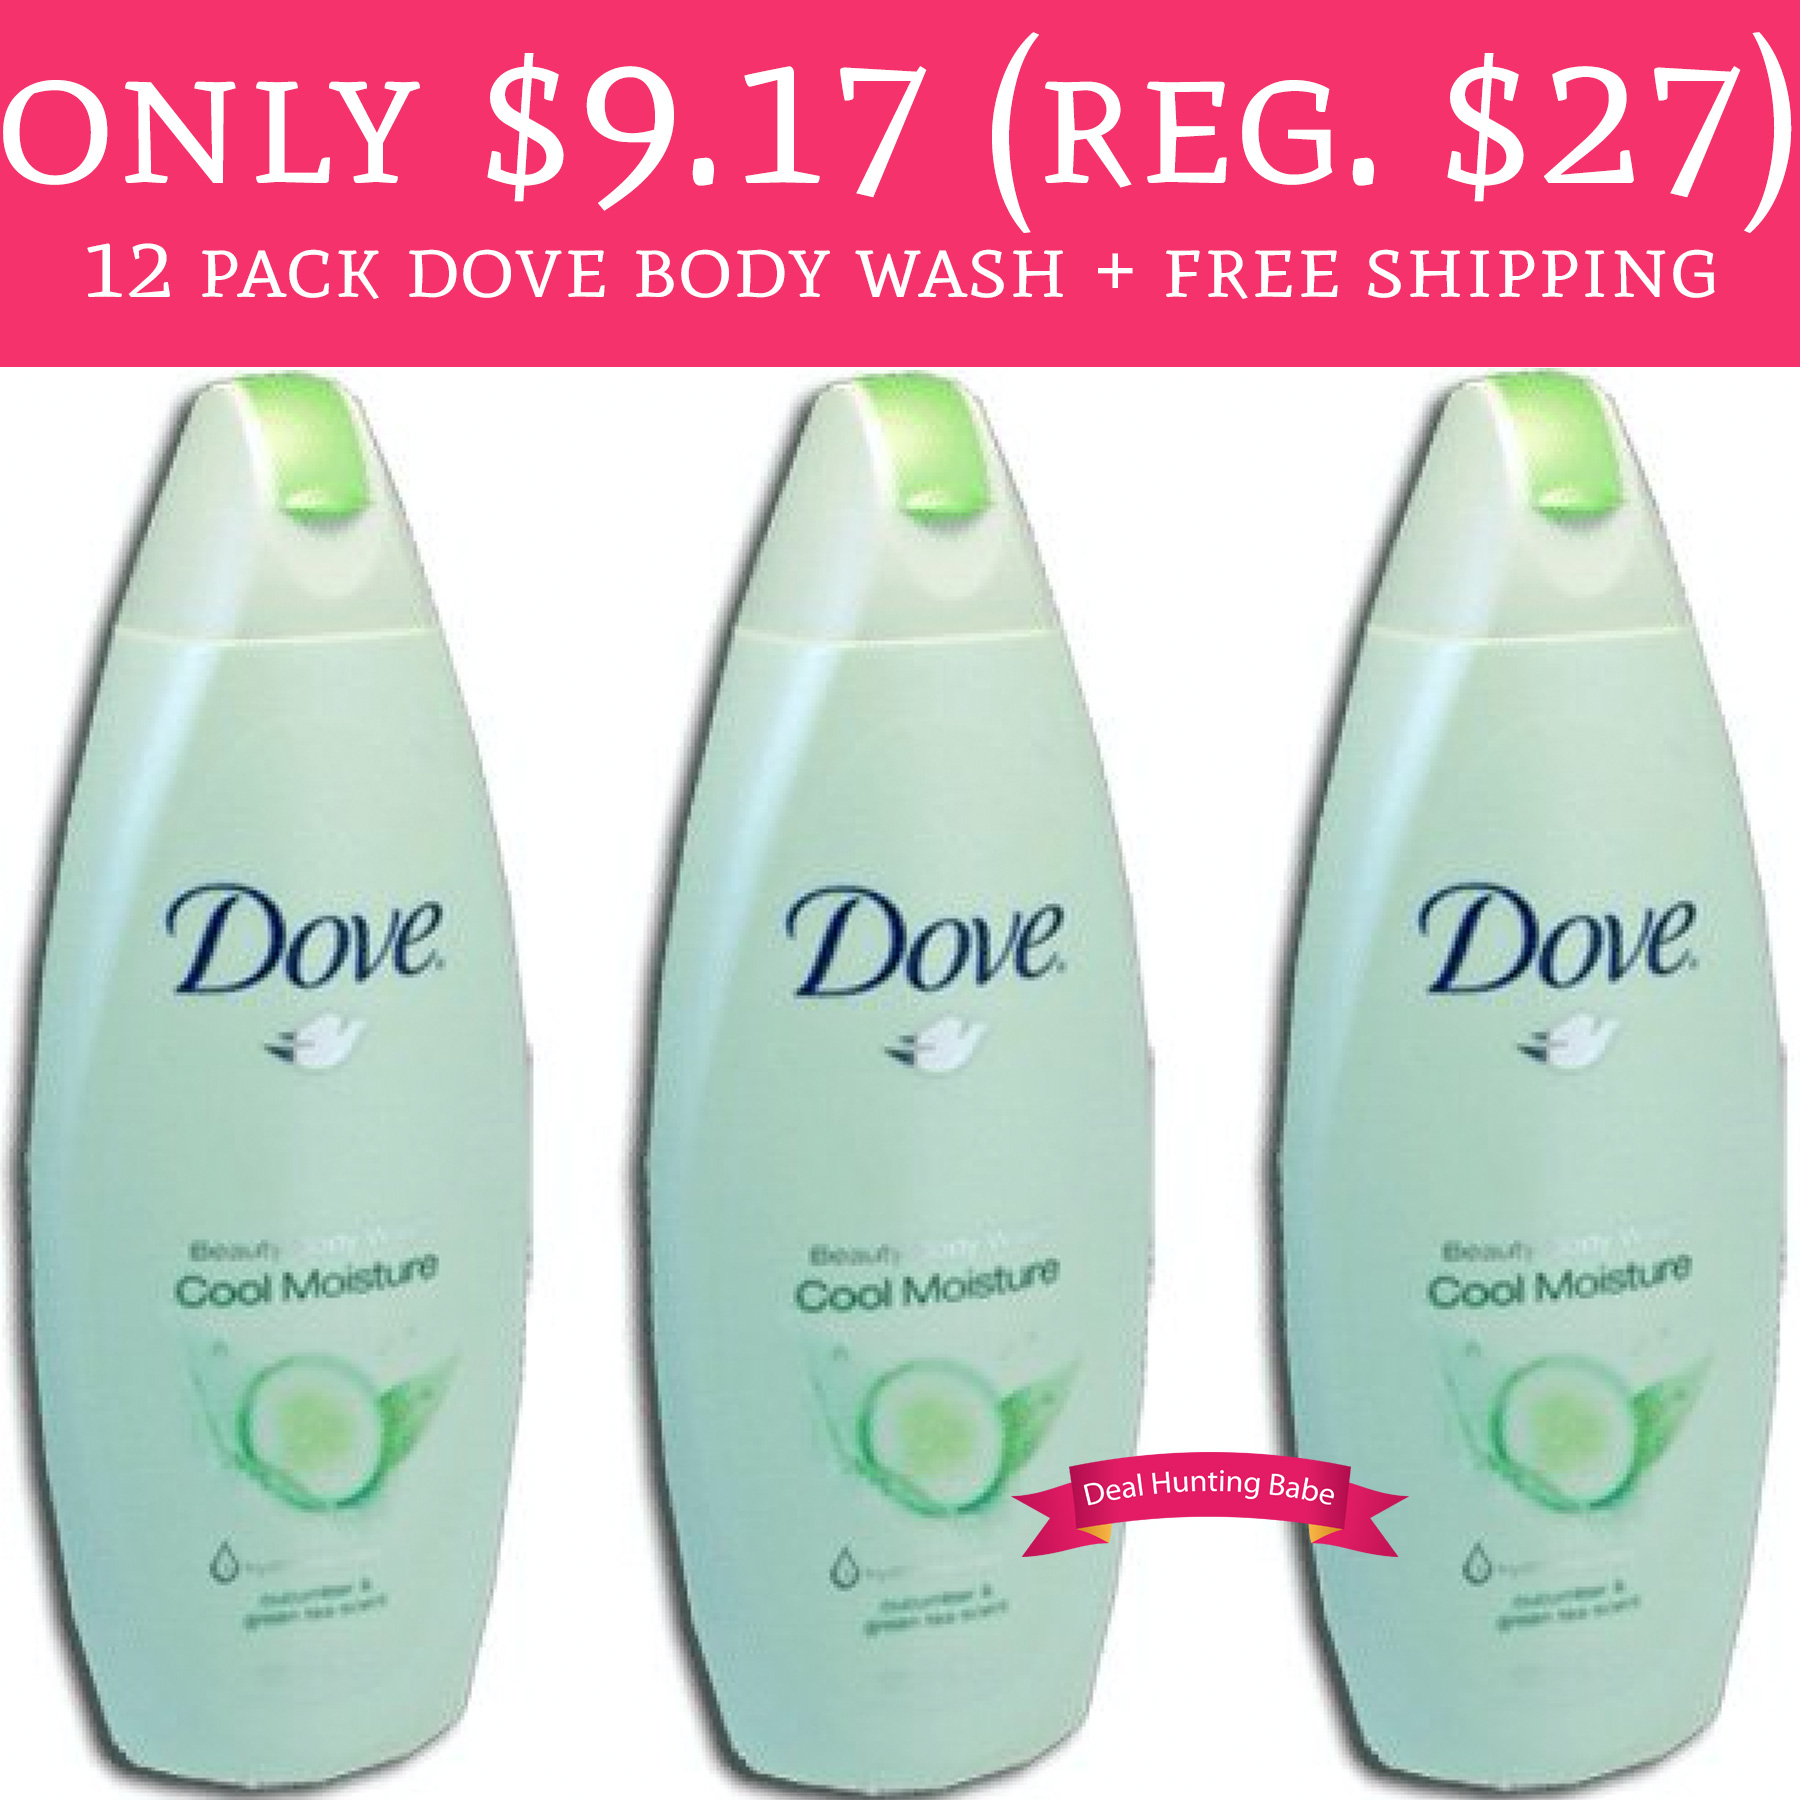 RUN! Only $9.17 (Regular $27) 12 Pack Dove Body Wash + Free Shipping - Deal Hunting Babe